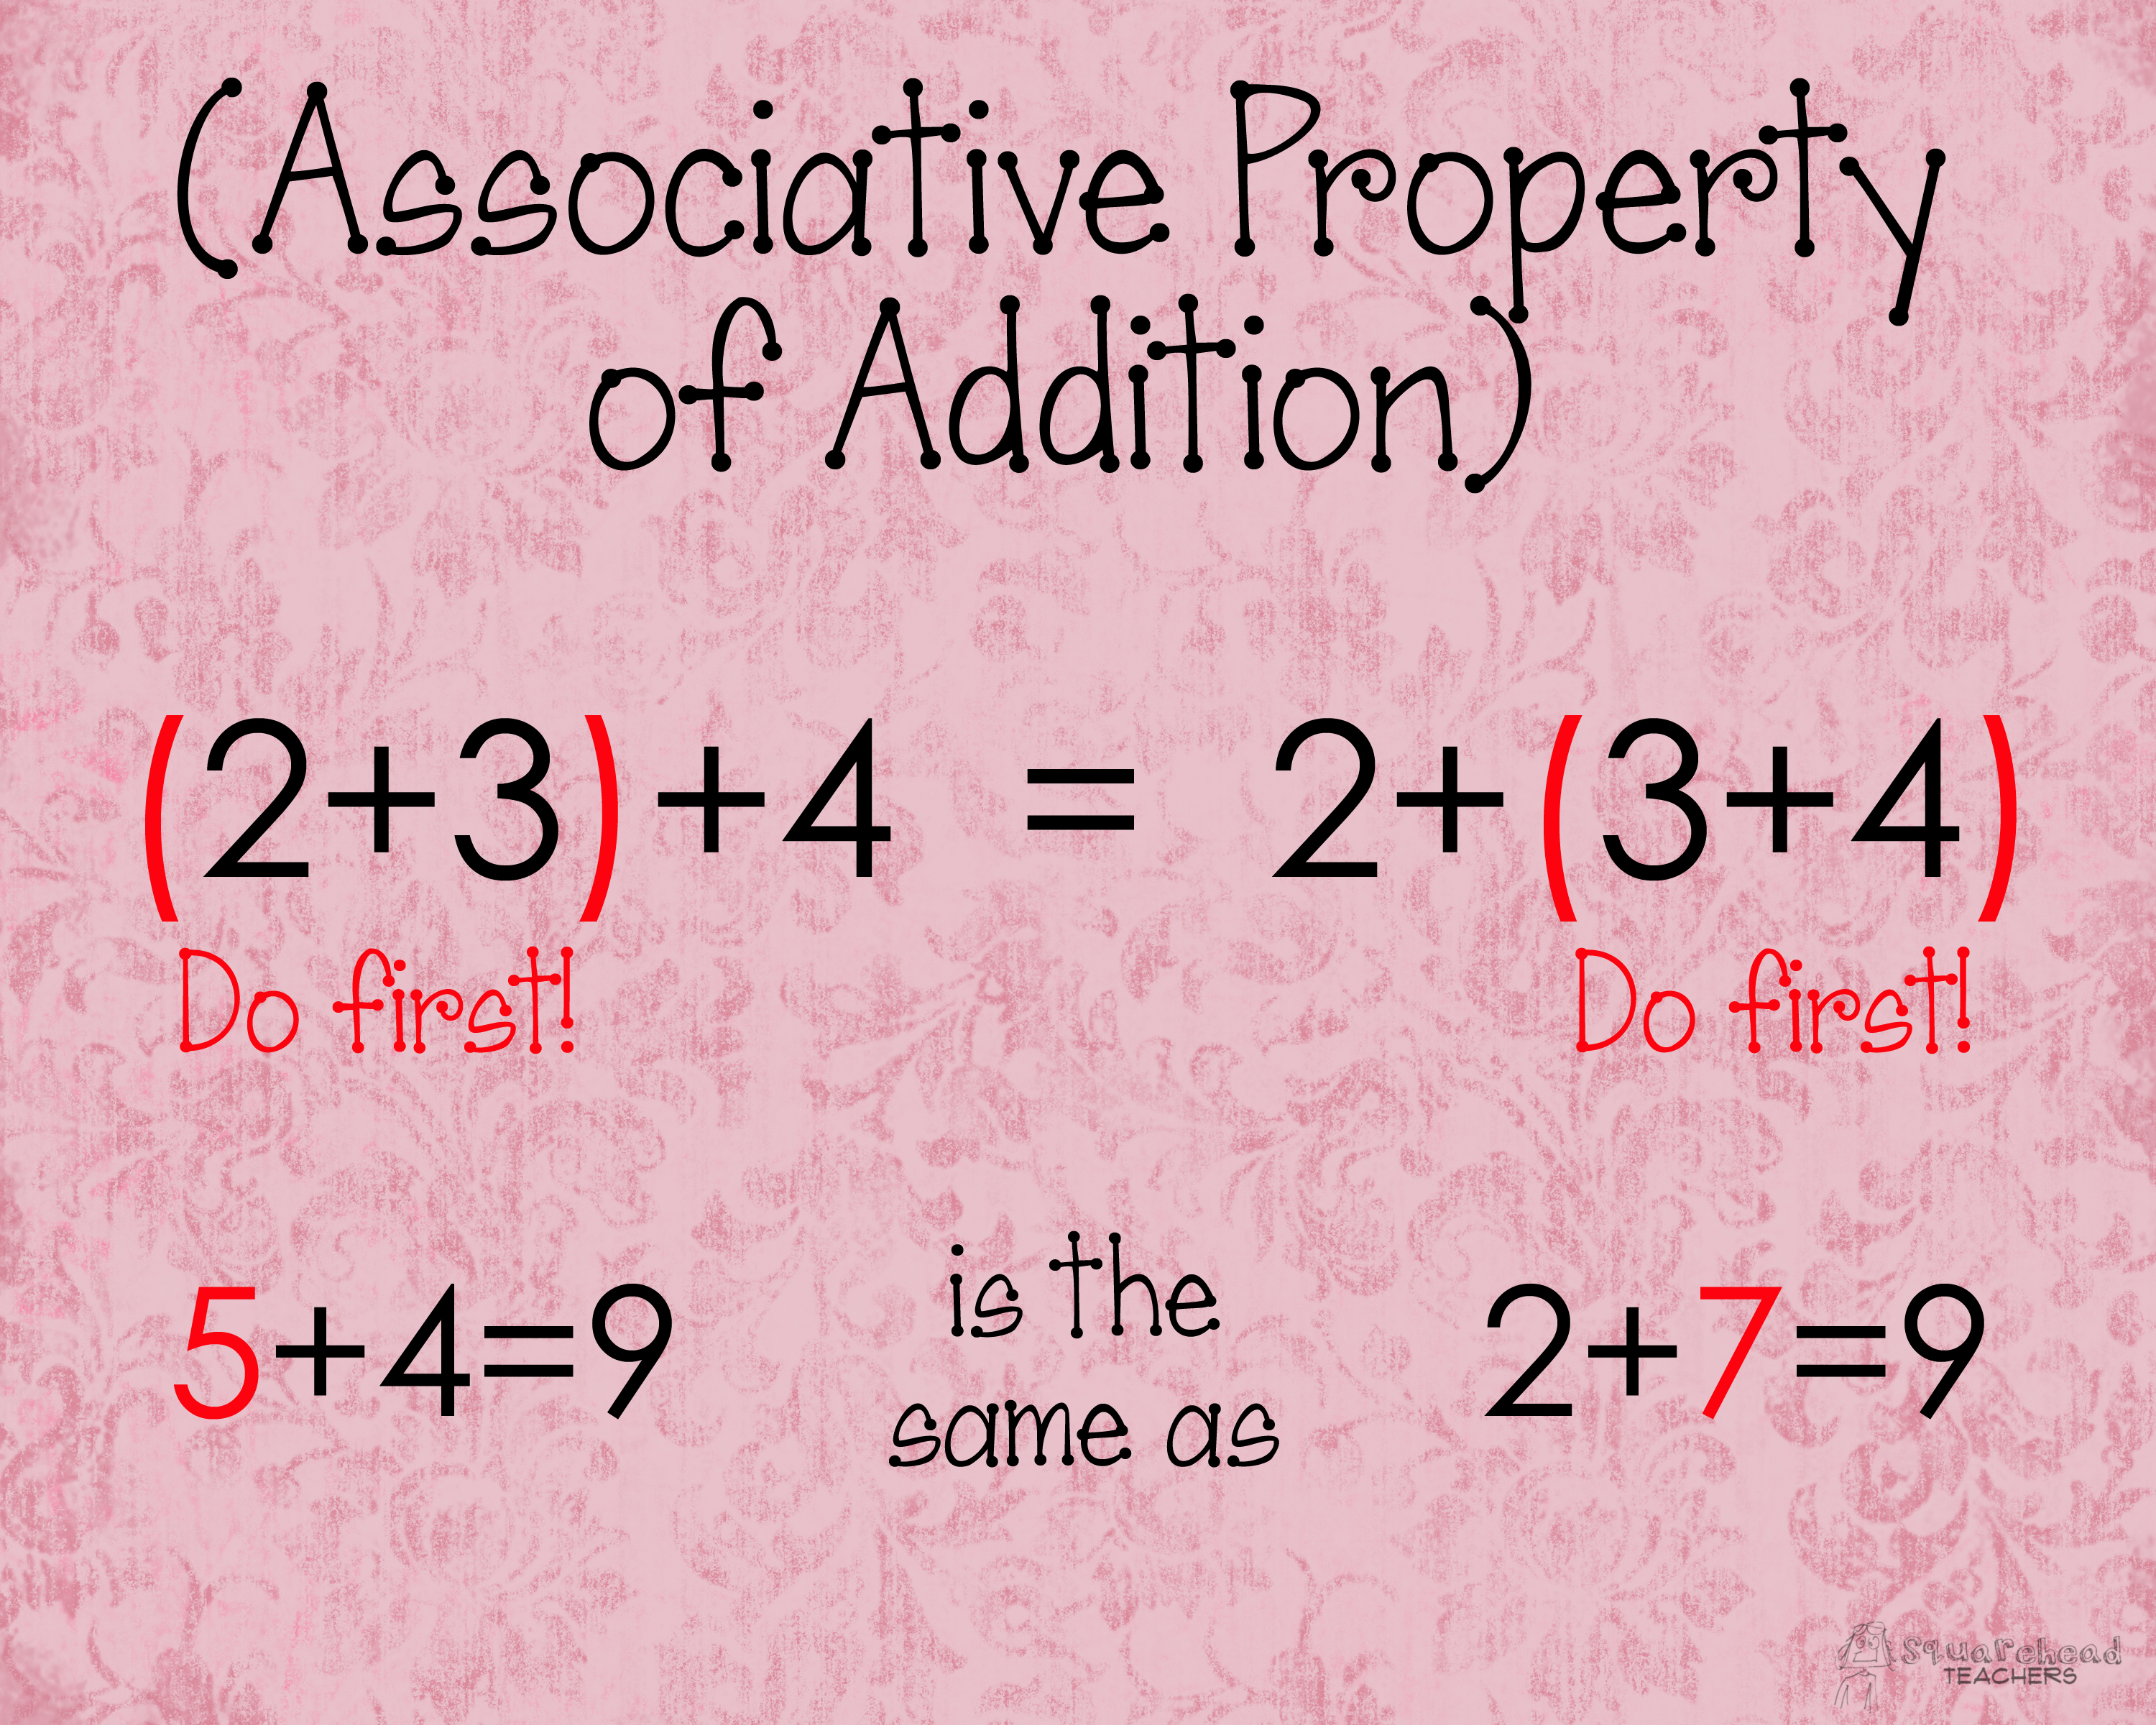 Associative Property of Addition Poster | Squarehead Teachers